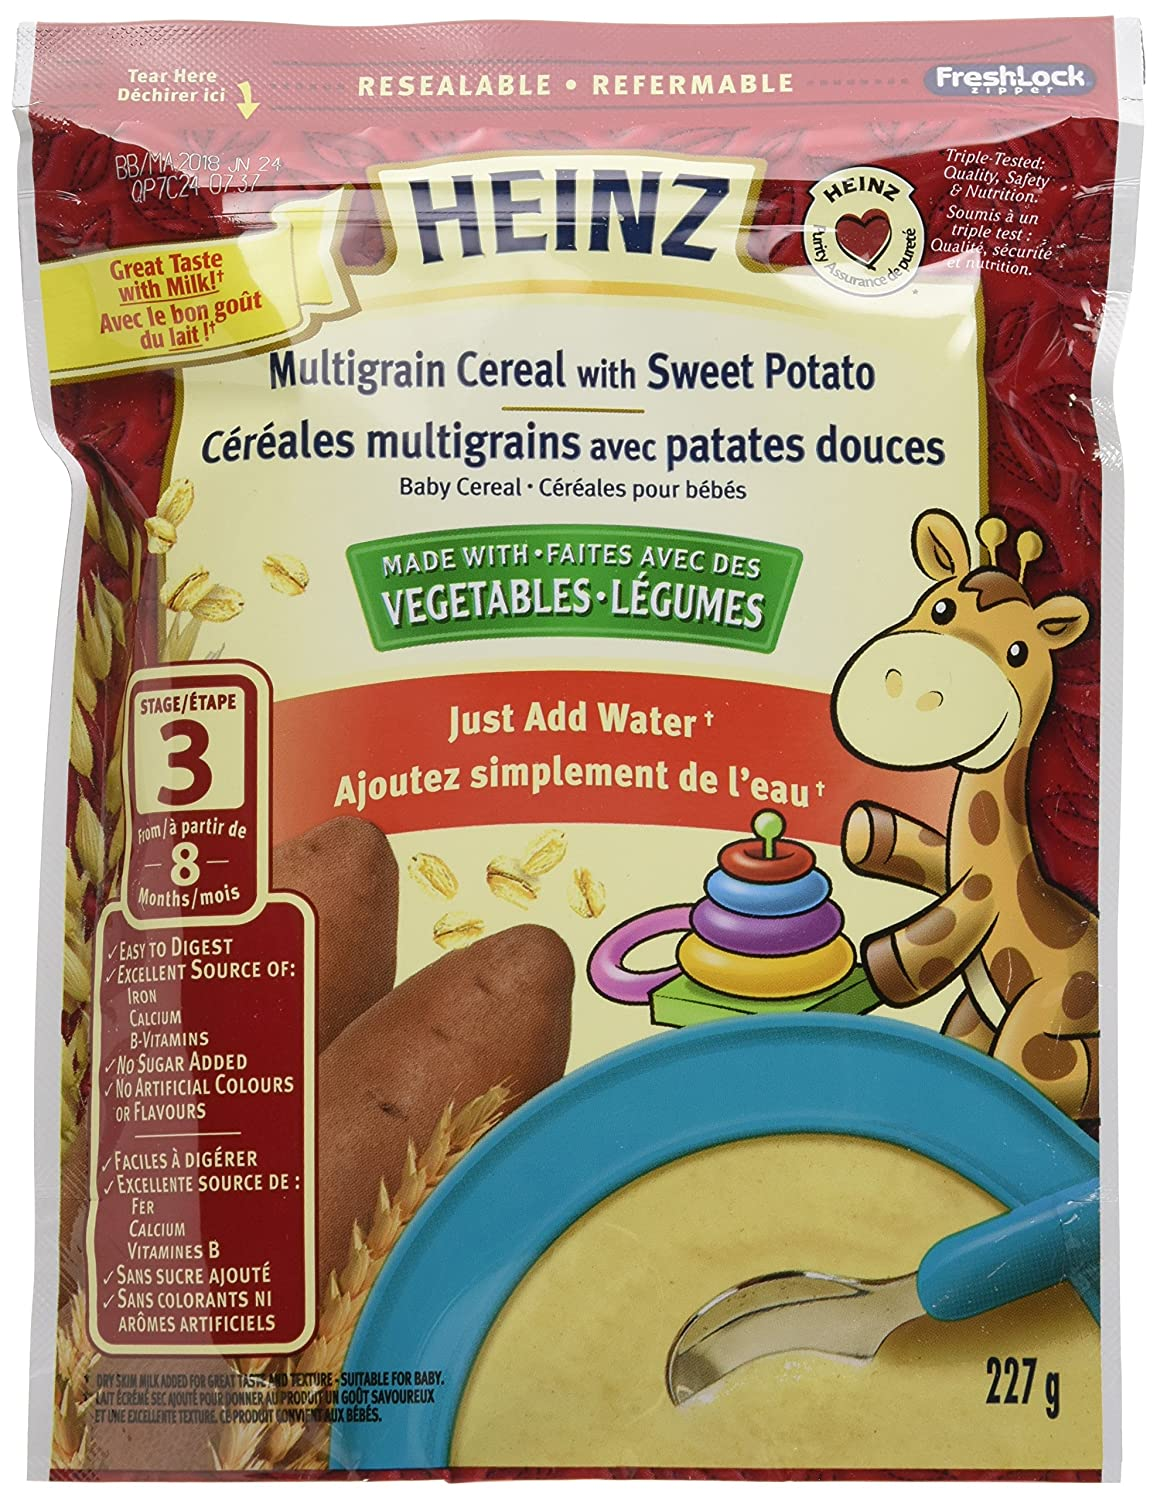 HEINZ Multigrain Cereal with Sweet Potato, 6 Pack, 227G Each 6 Pack Kraft Heinz Canada ULC